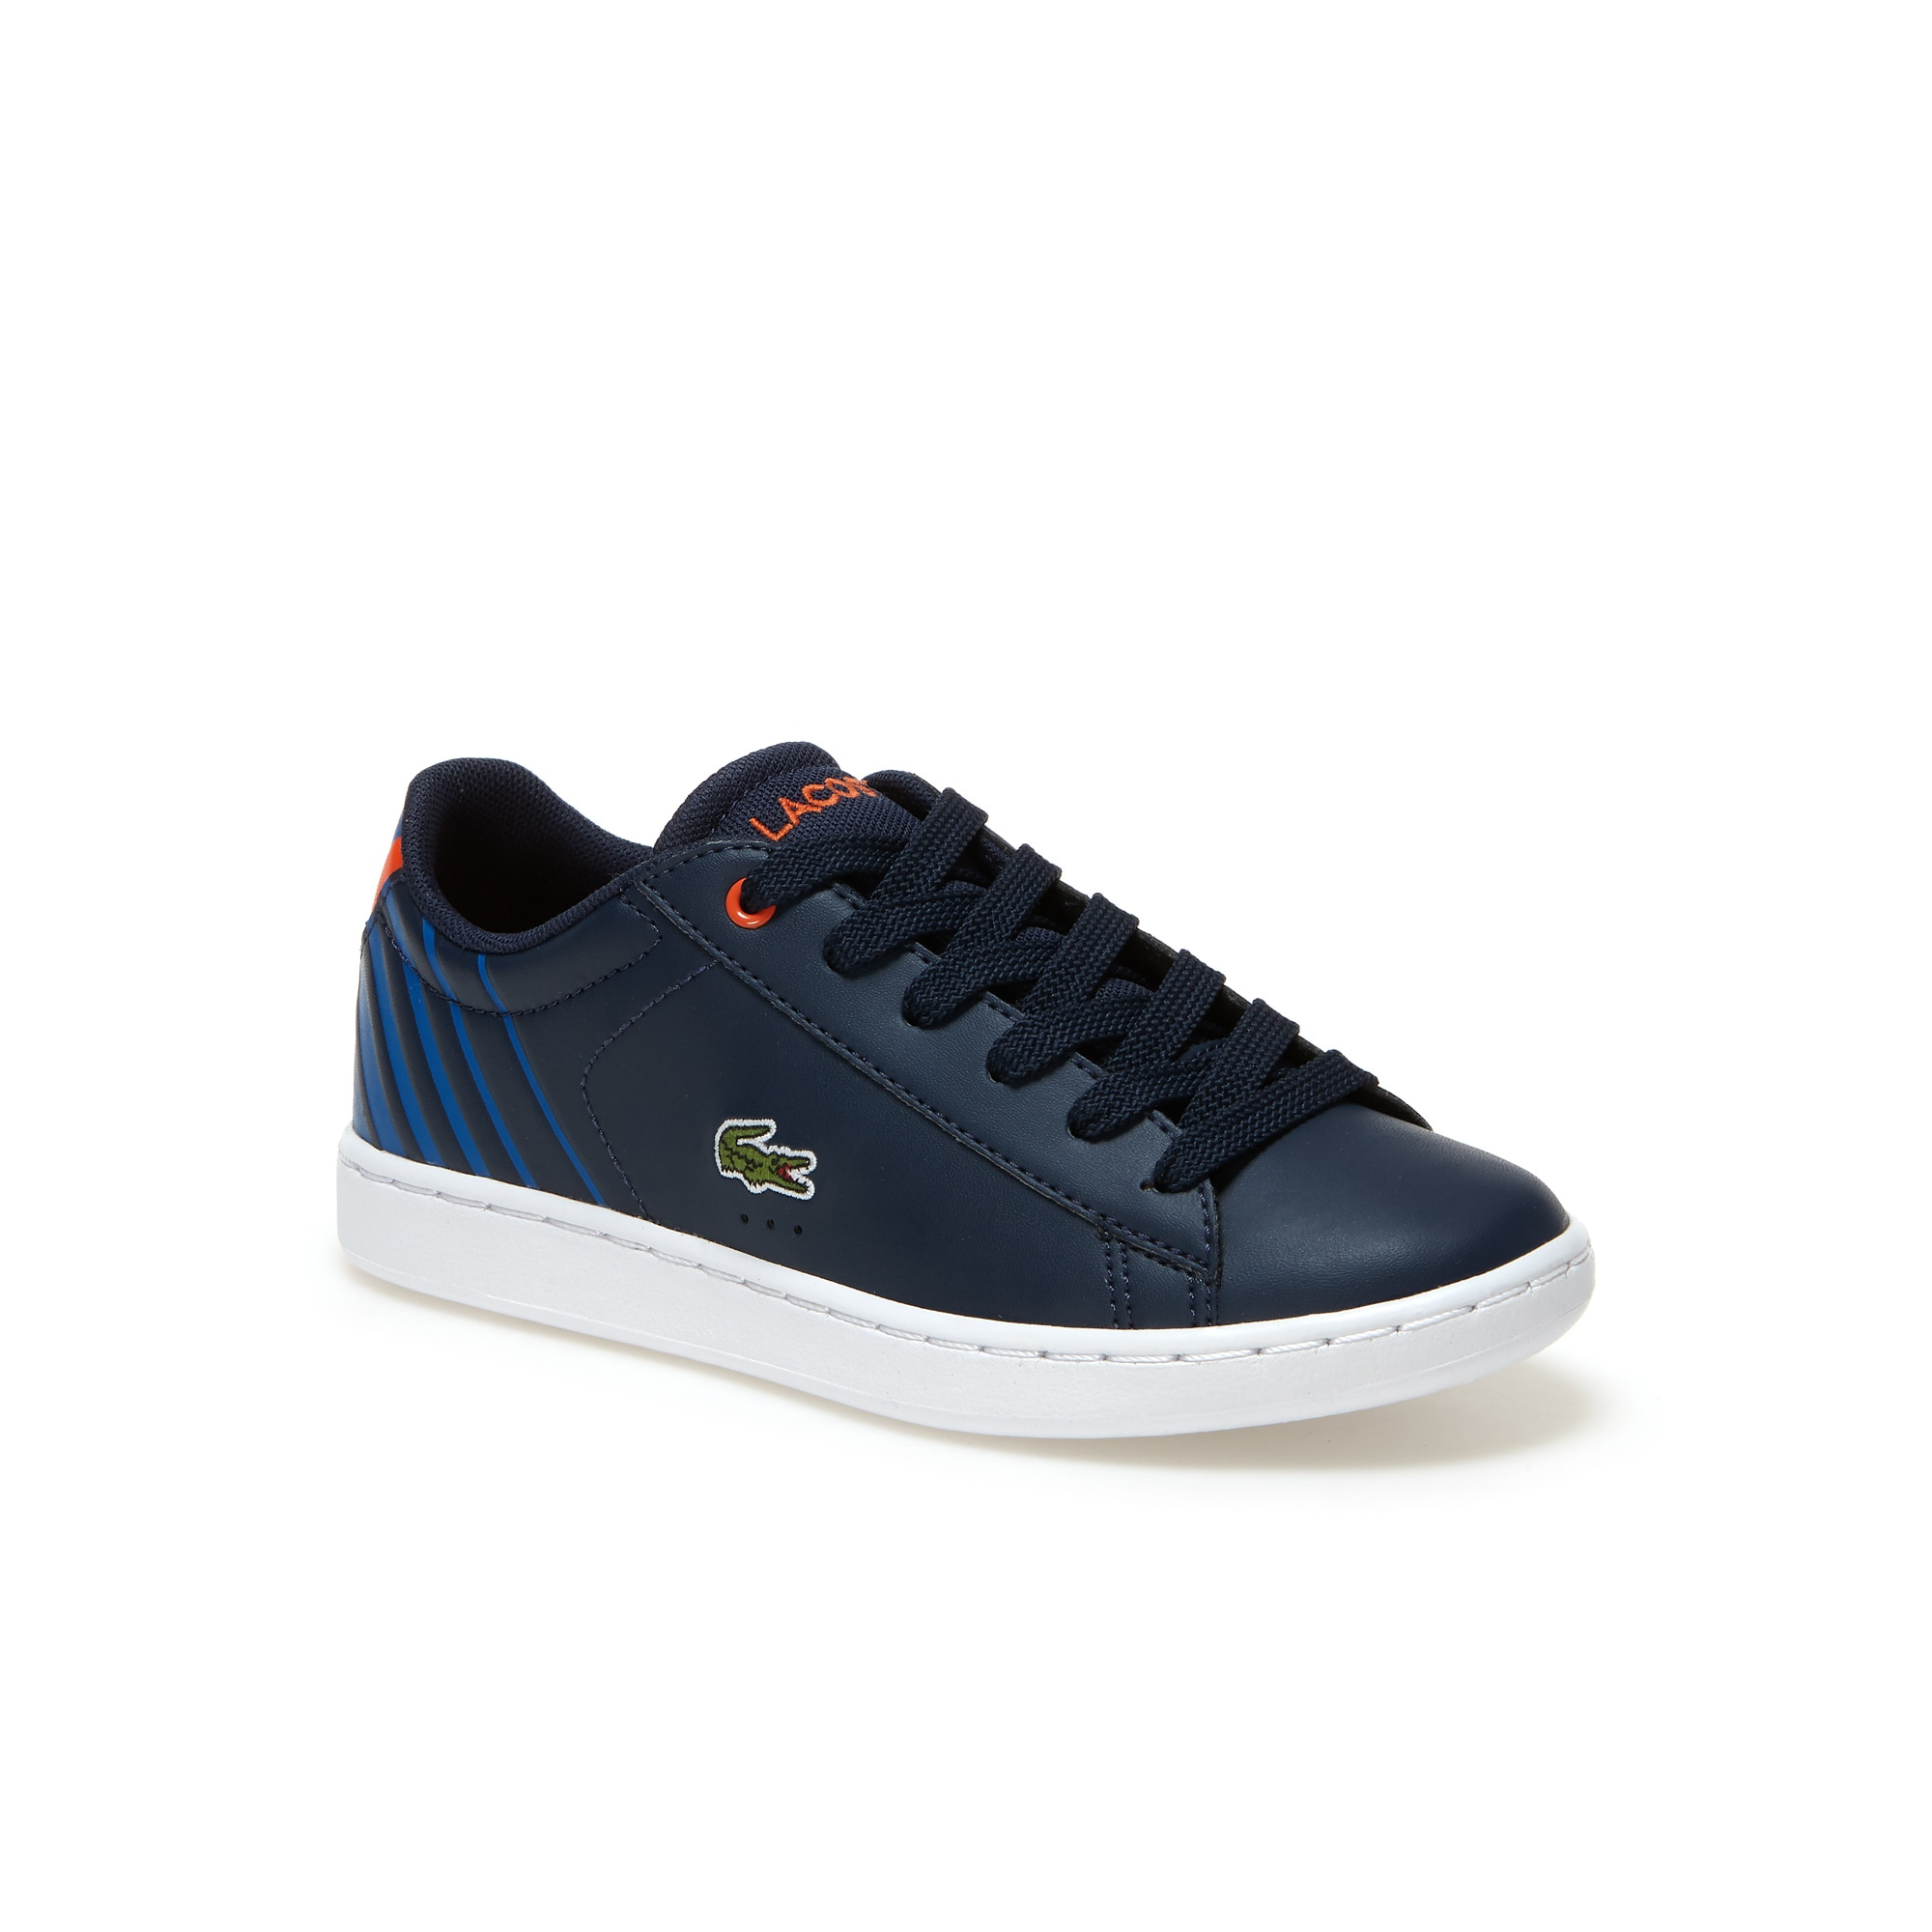 Carnaby Evo kindersneakers leather-look